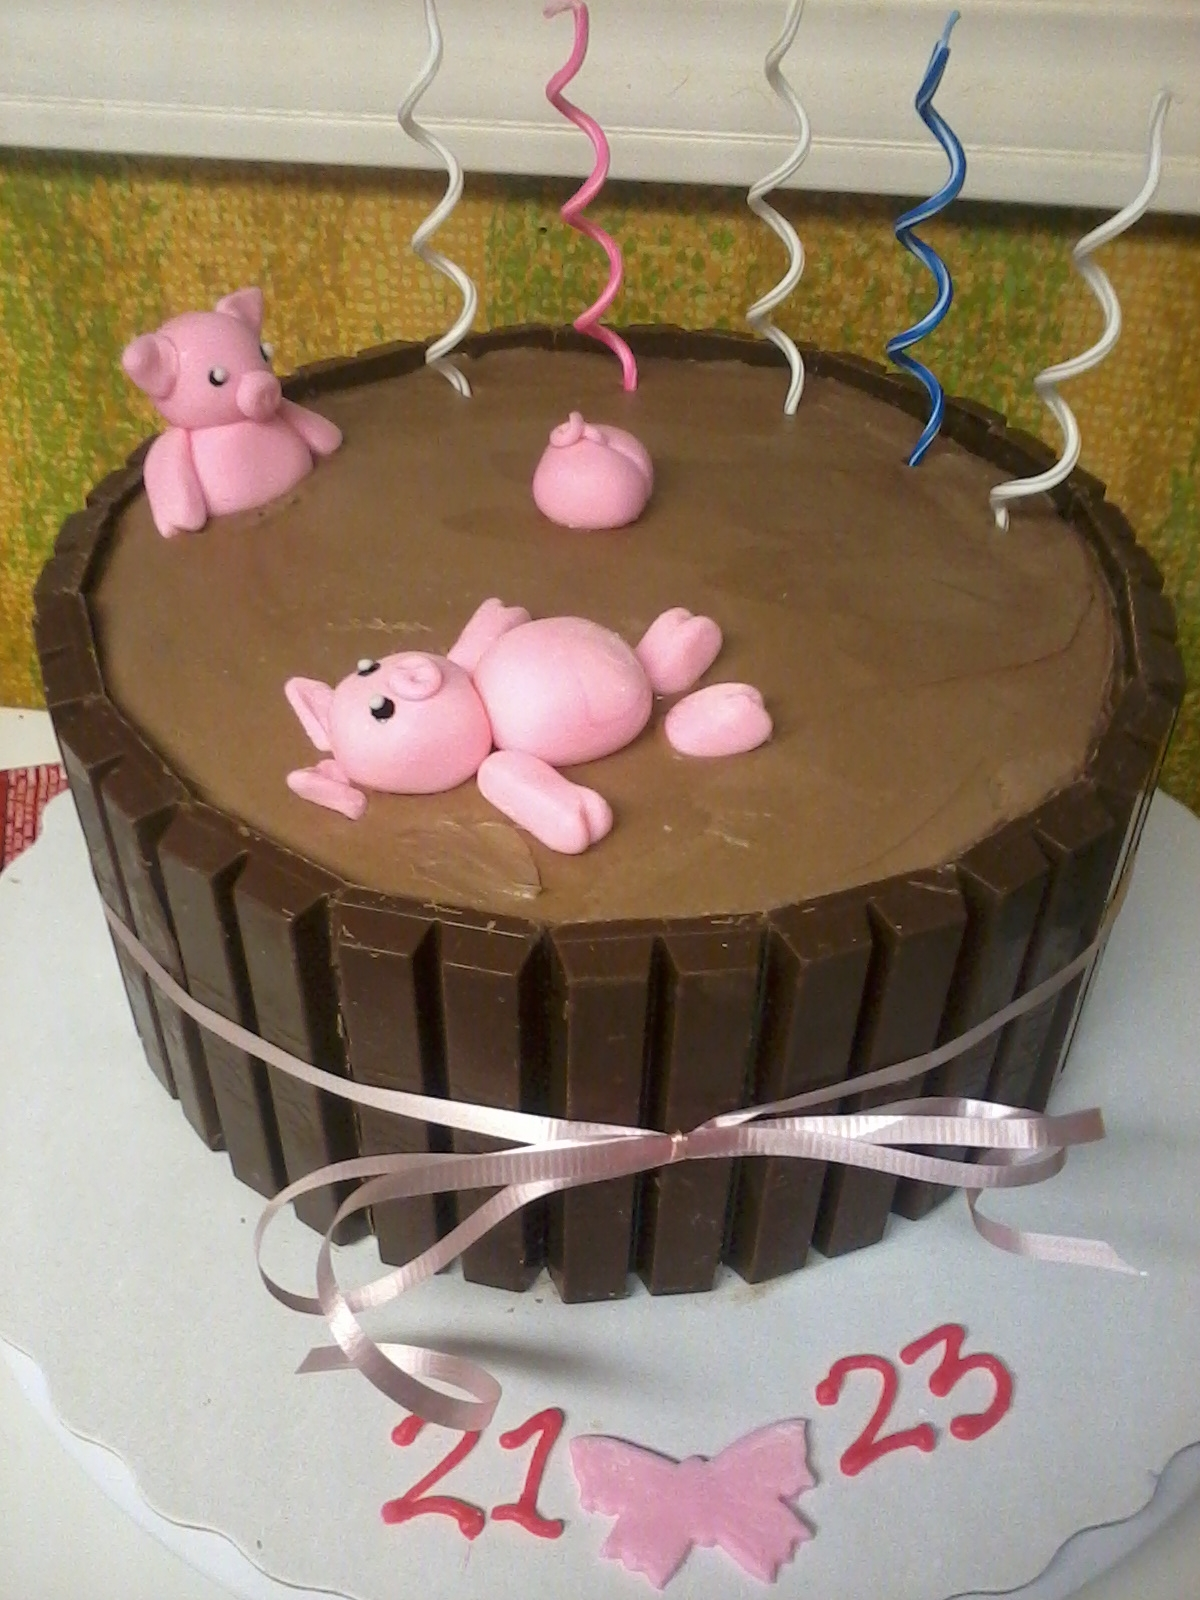 The Ever So Popular Pig In Mud Cake I Have No Idea To Whoever Did This First But It Is Super Cute So Congrats To Their Awesome Thinking Mi... The ever so popular pig-in-mud cake! I have no idea to whoever did this first, but it is super cute so congrats to their awesome thinking...